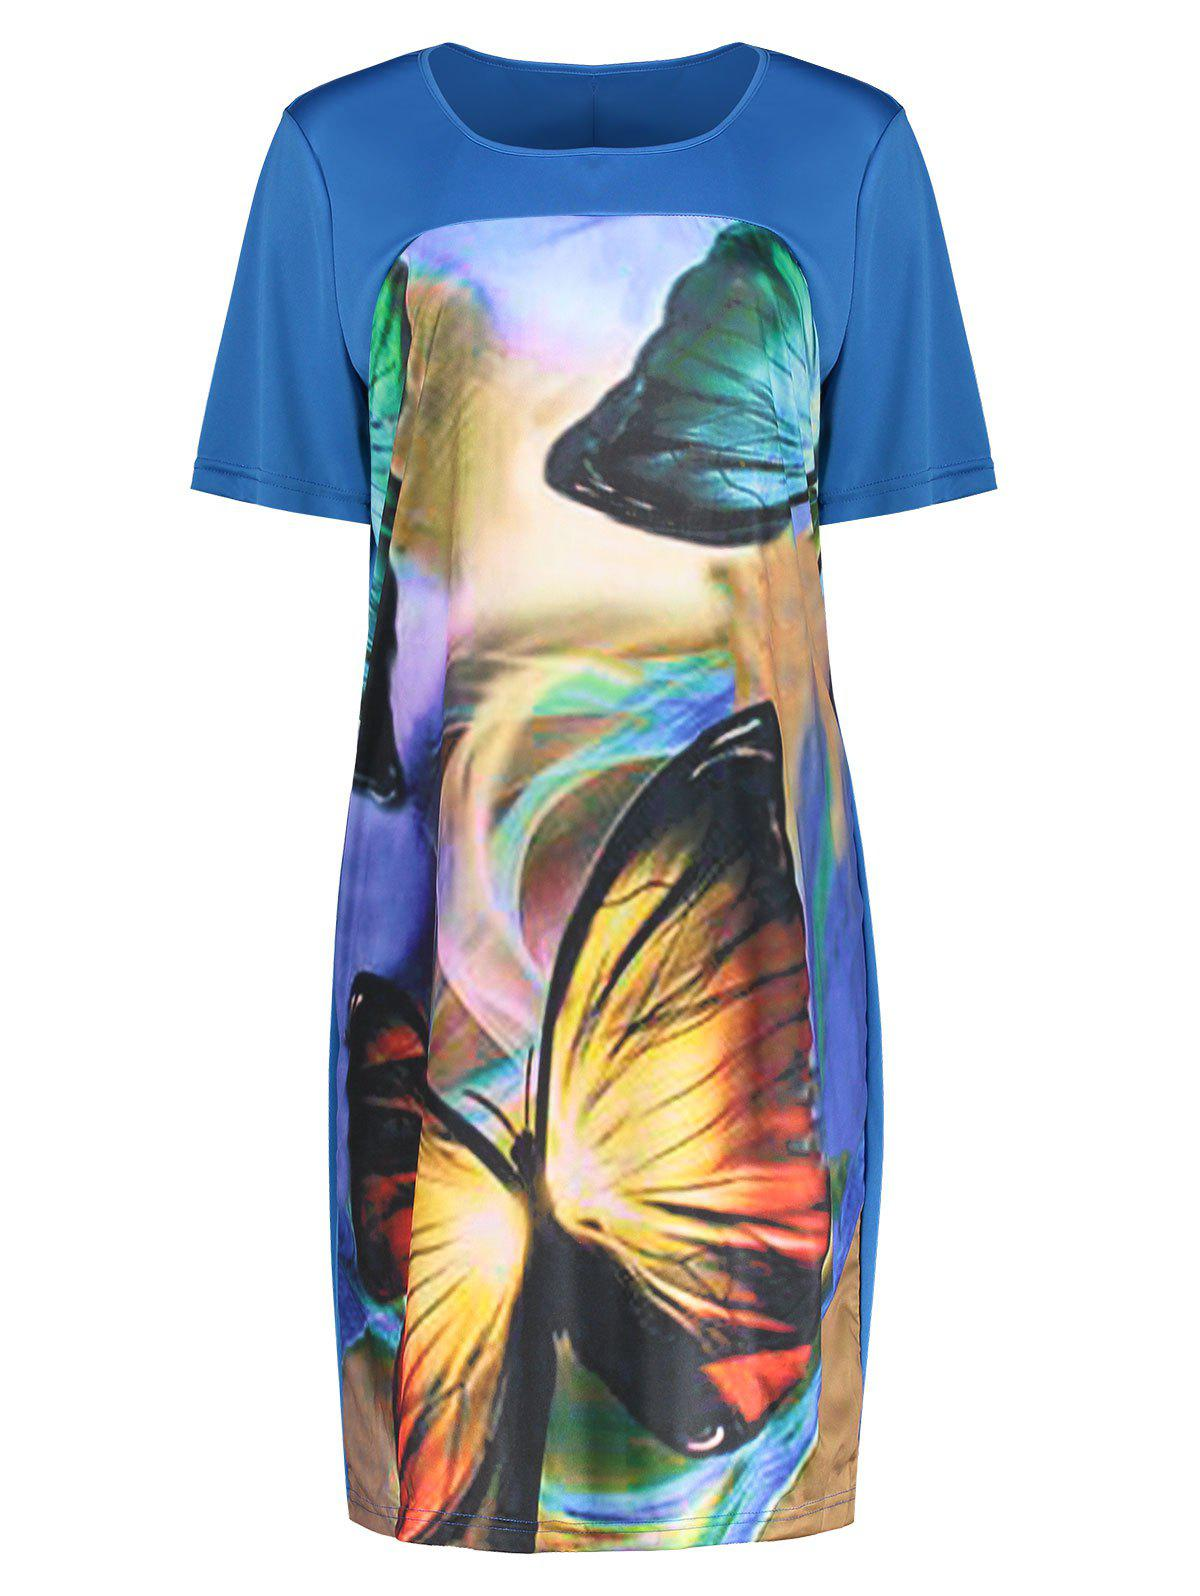 Shops Butterfly Printed Plus Size Casual T-shirt Dress